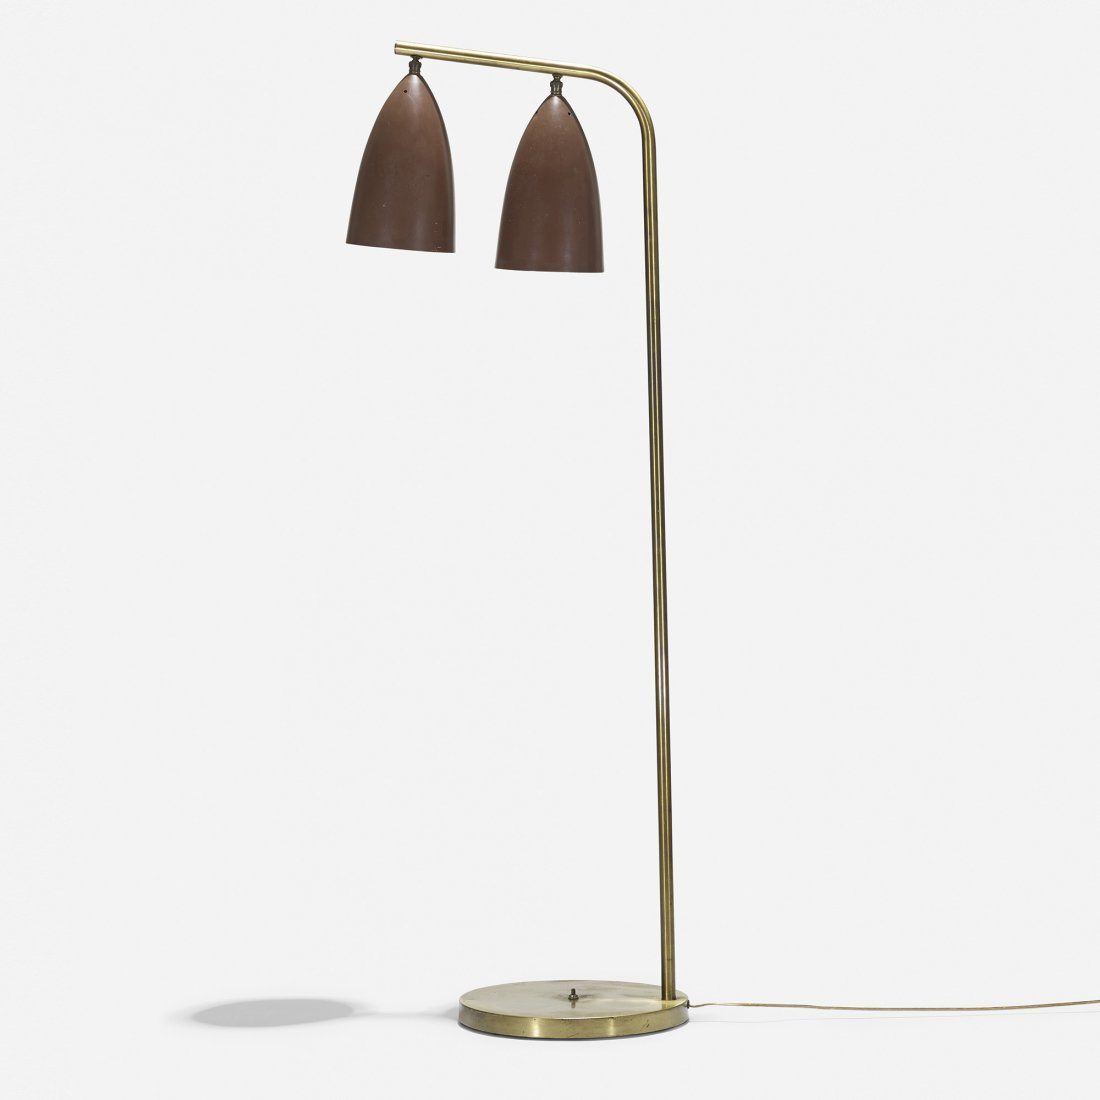 Greta  Magnusson Grossman floor lamp